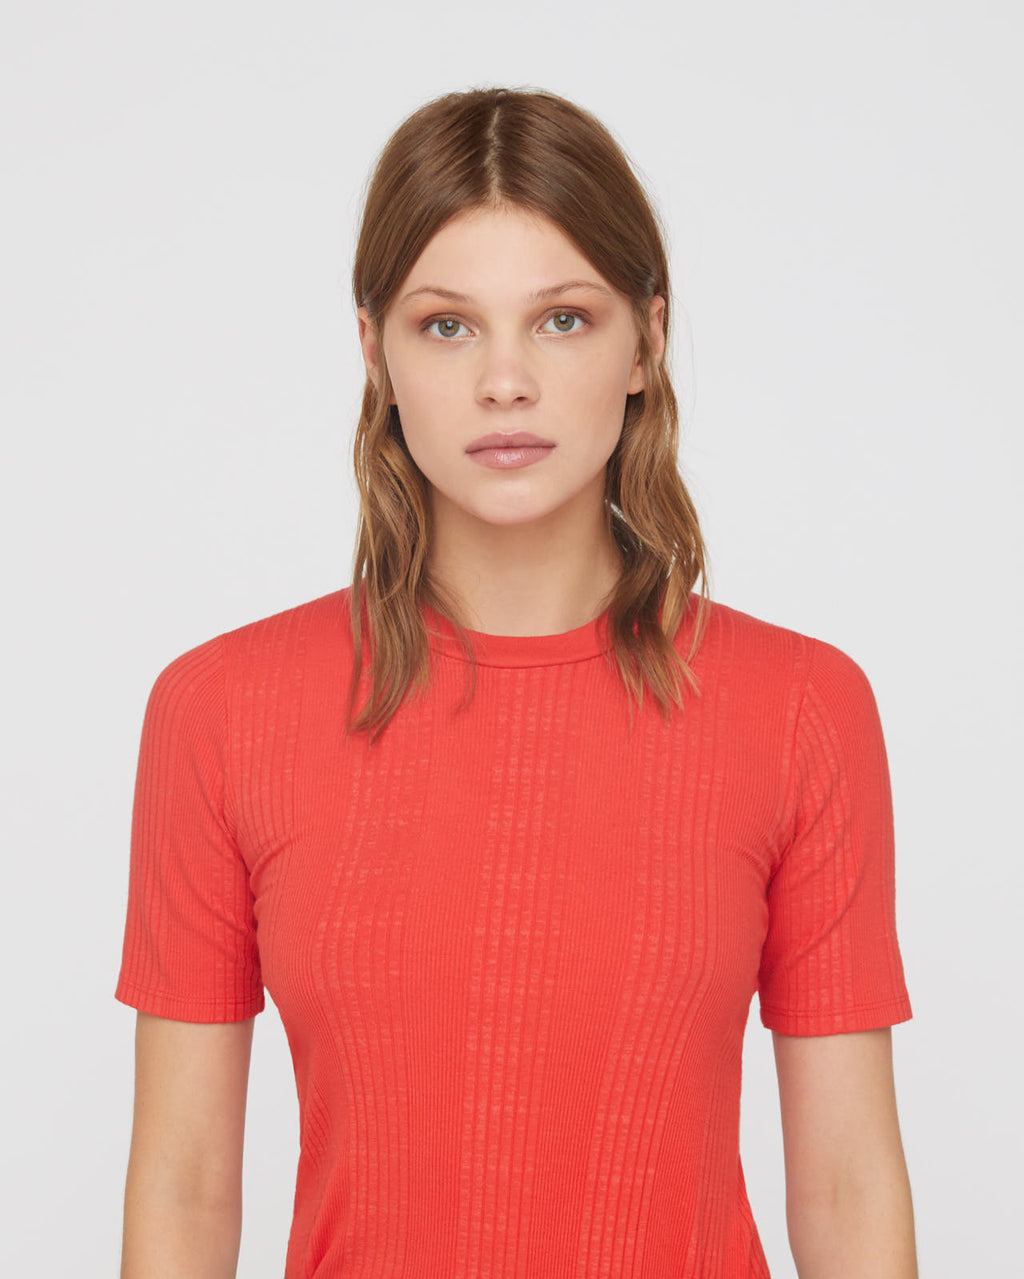 The Sabina Tee in Poppy